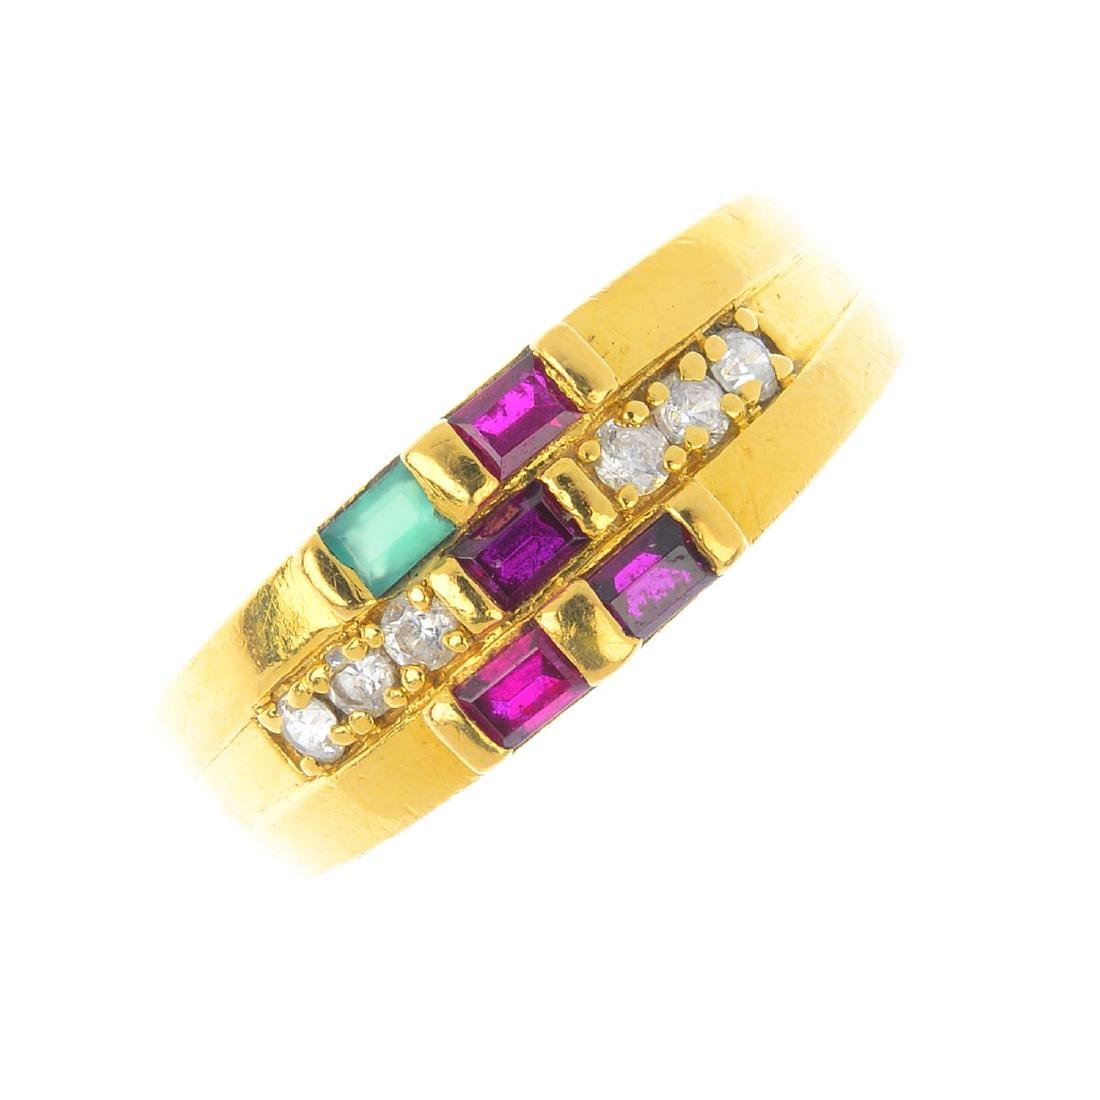 A gem-set dress ring. The baguette-cut ruby and emerald